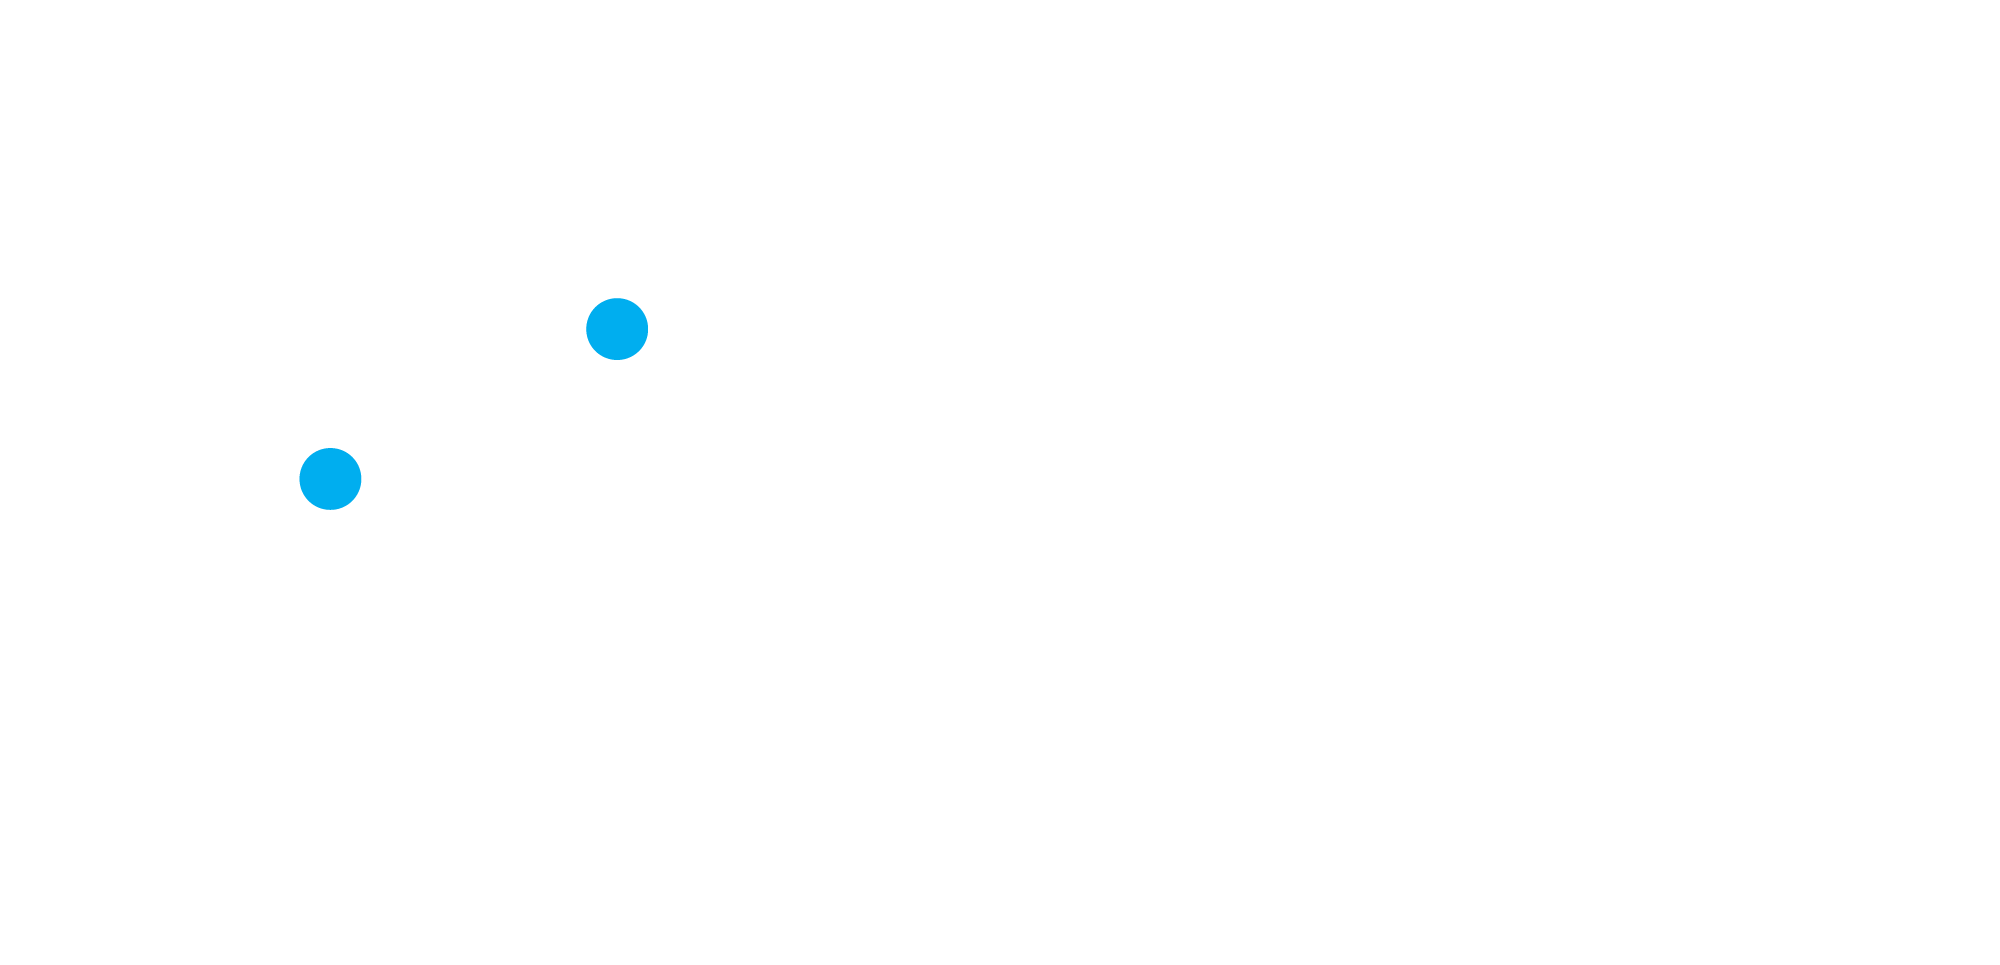 Self learning                         solutions